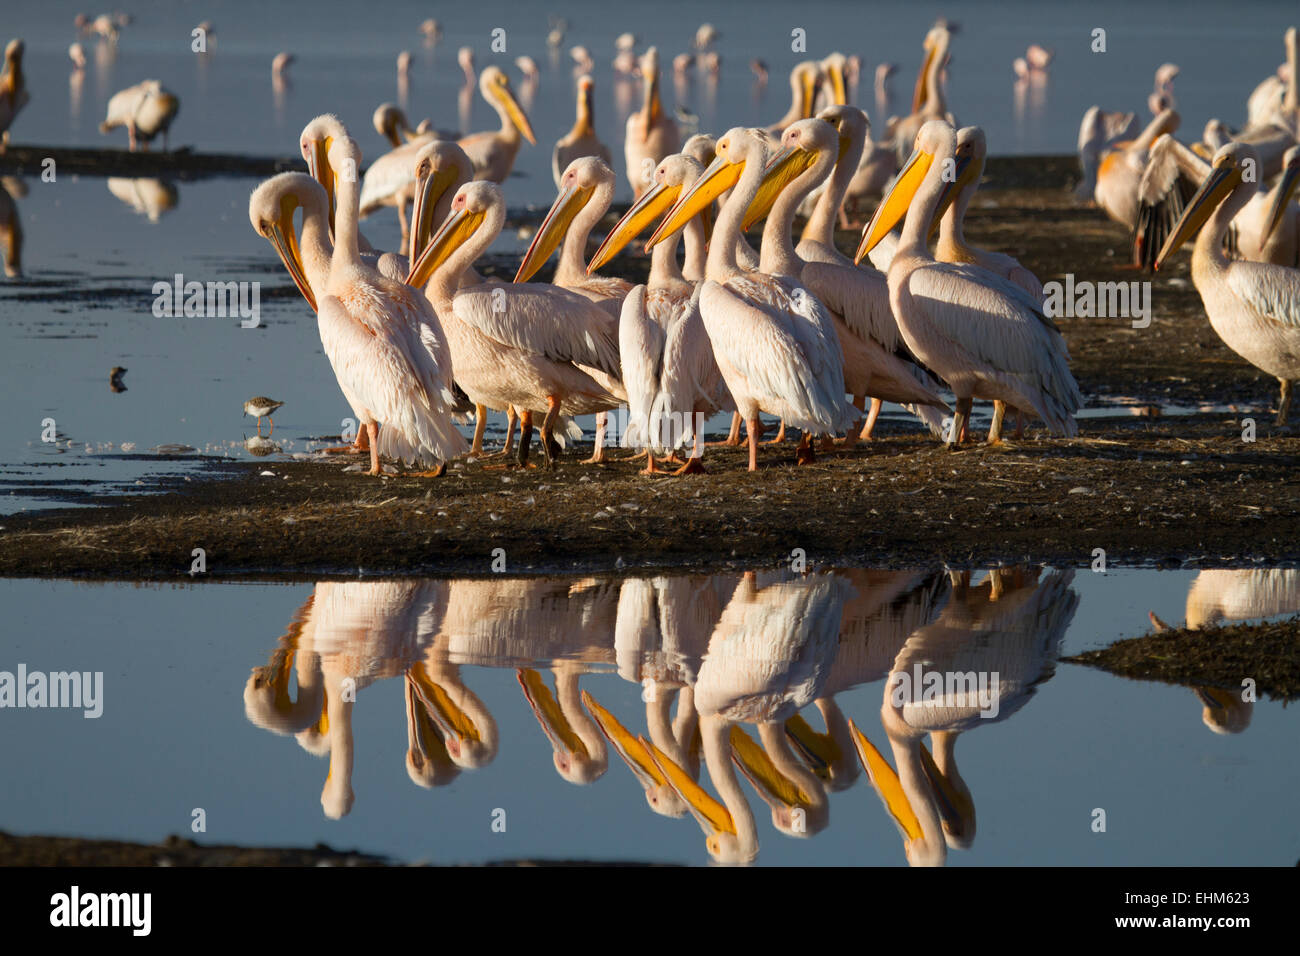 Great white pelicans (Pelecanus onocrotalus) - Stock Image